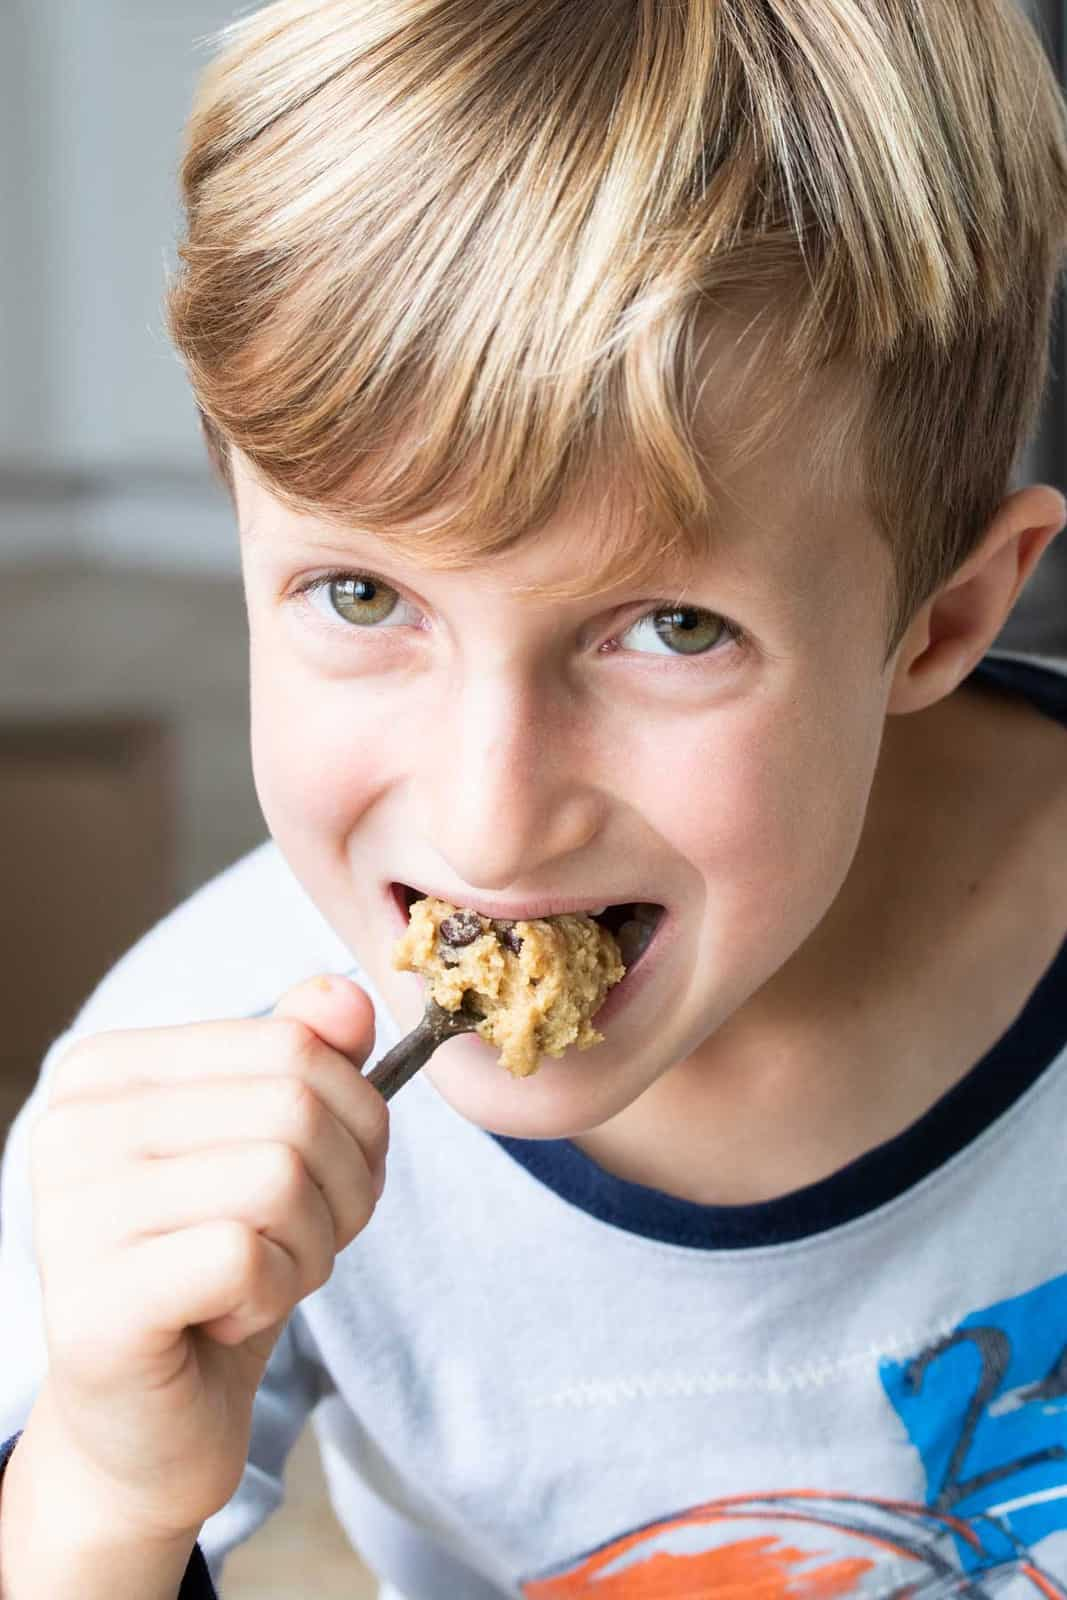 Boy eating raw chocolate chip cookie dough from a spoon